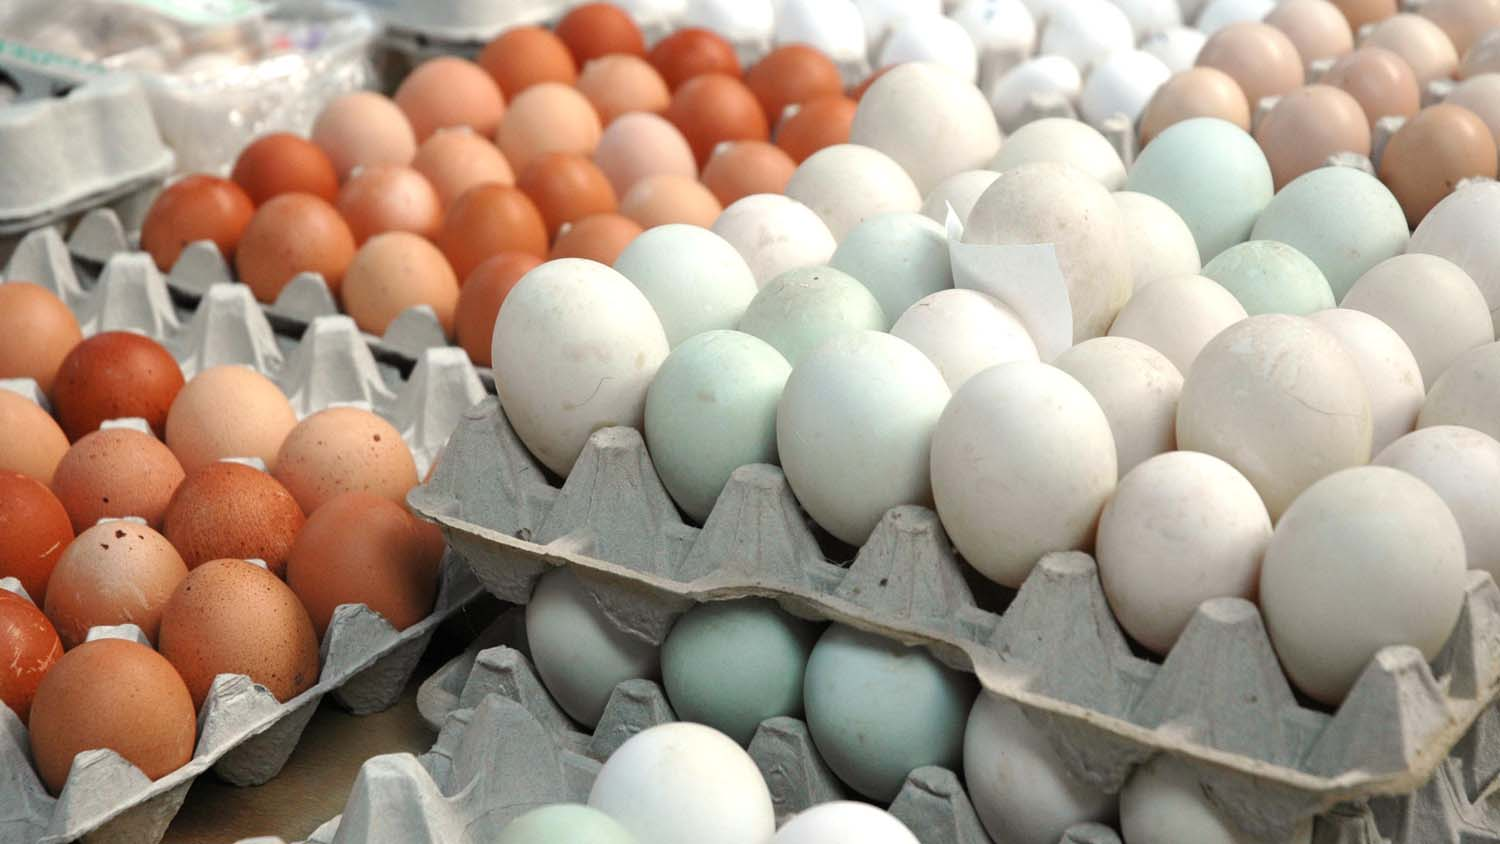 Eggs should be considered a 'super food', says new research